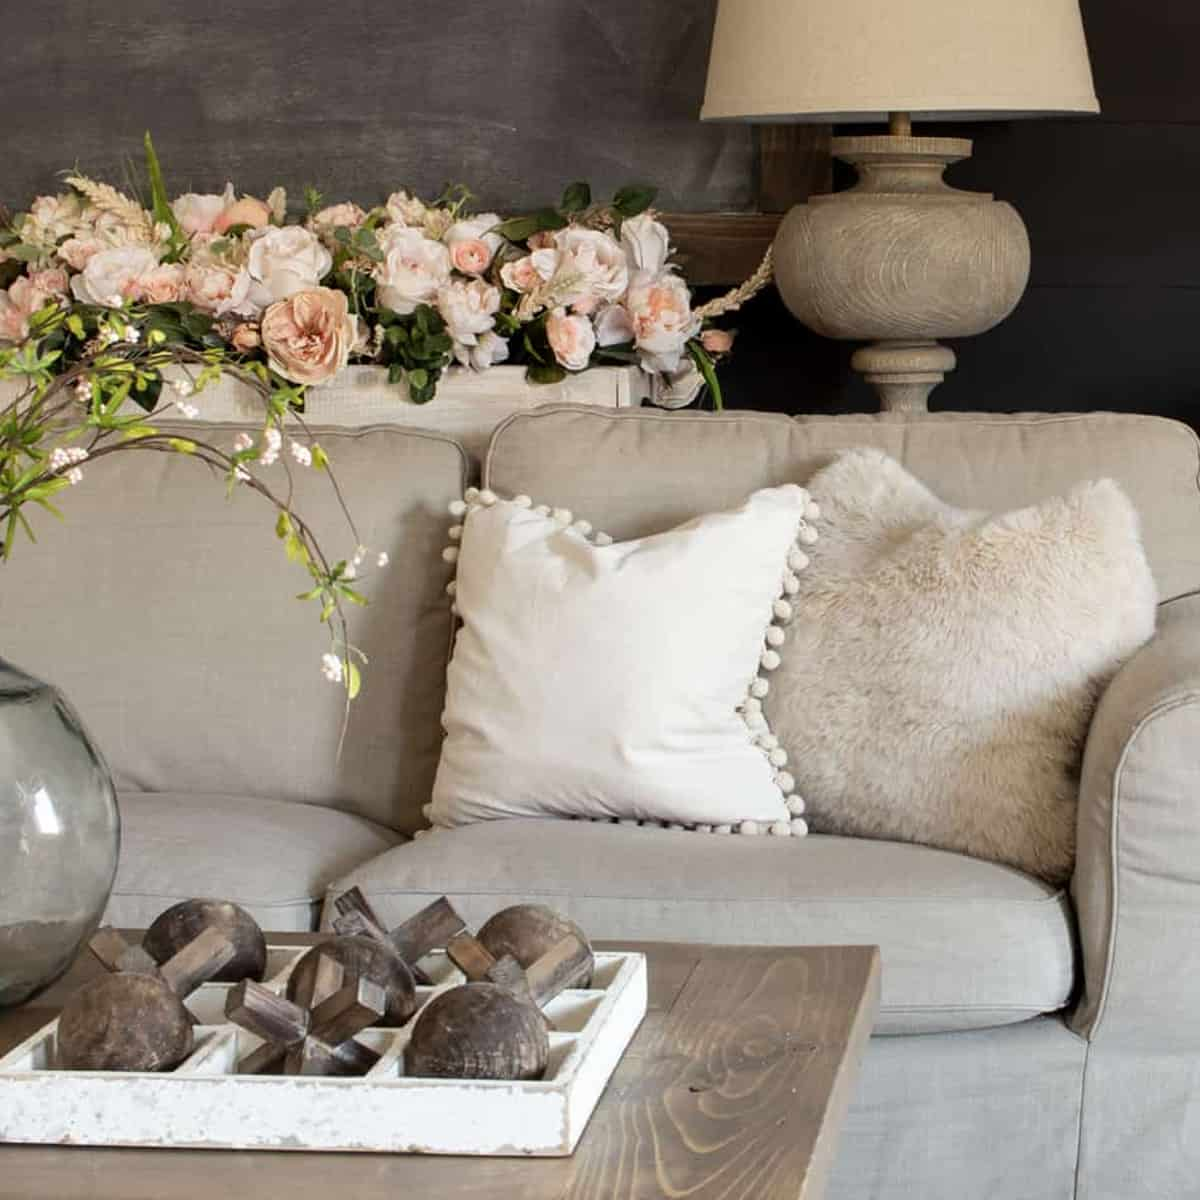 taupe couch with cream pillows, pink flowers behind on sofa table with lamp